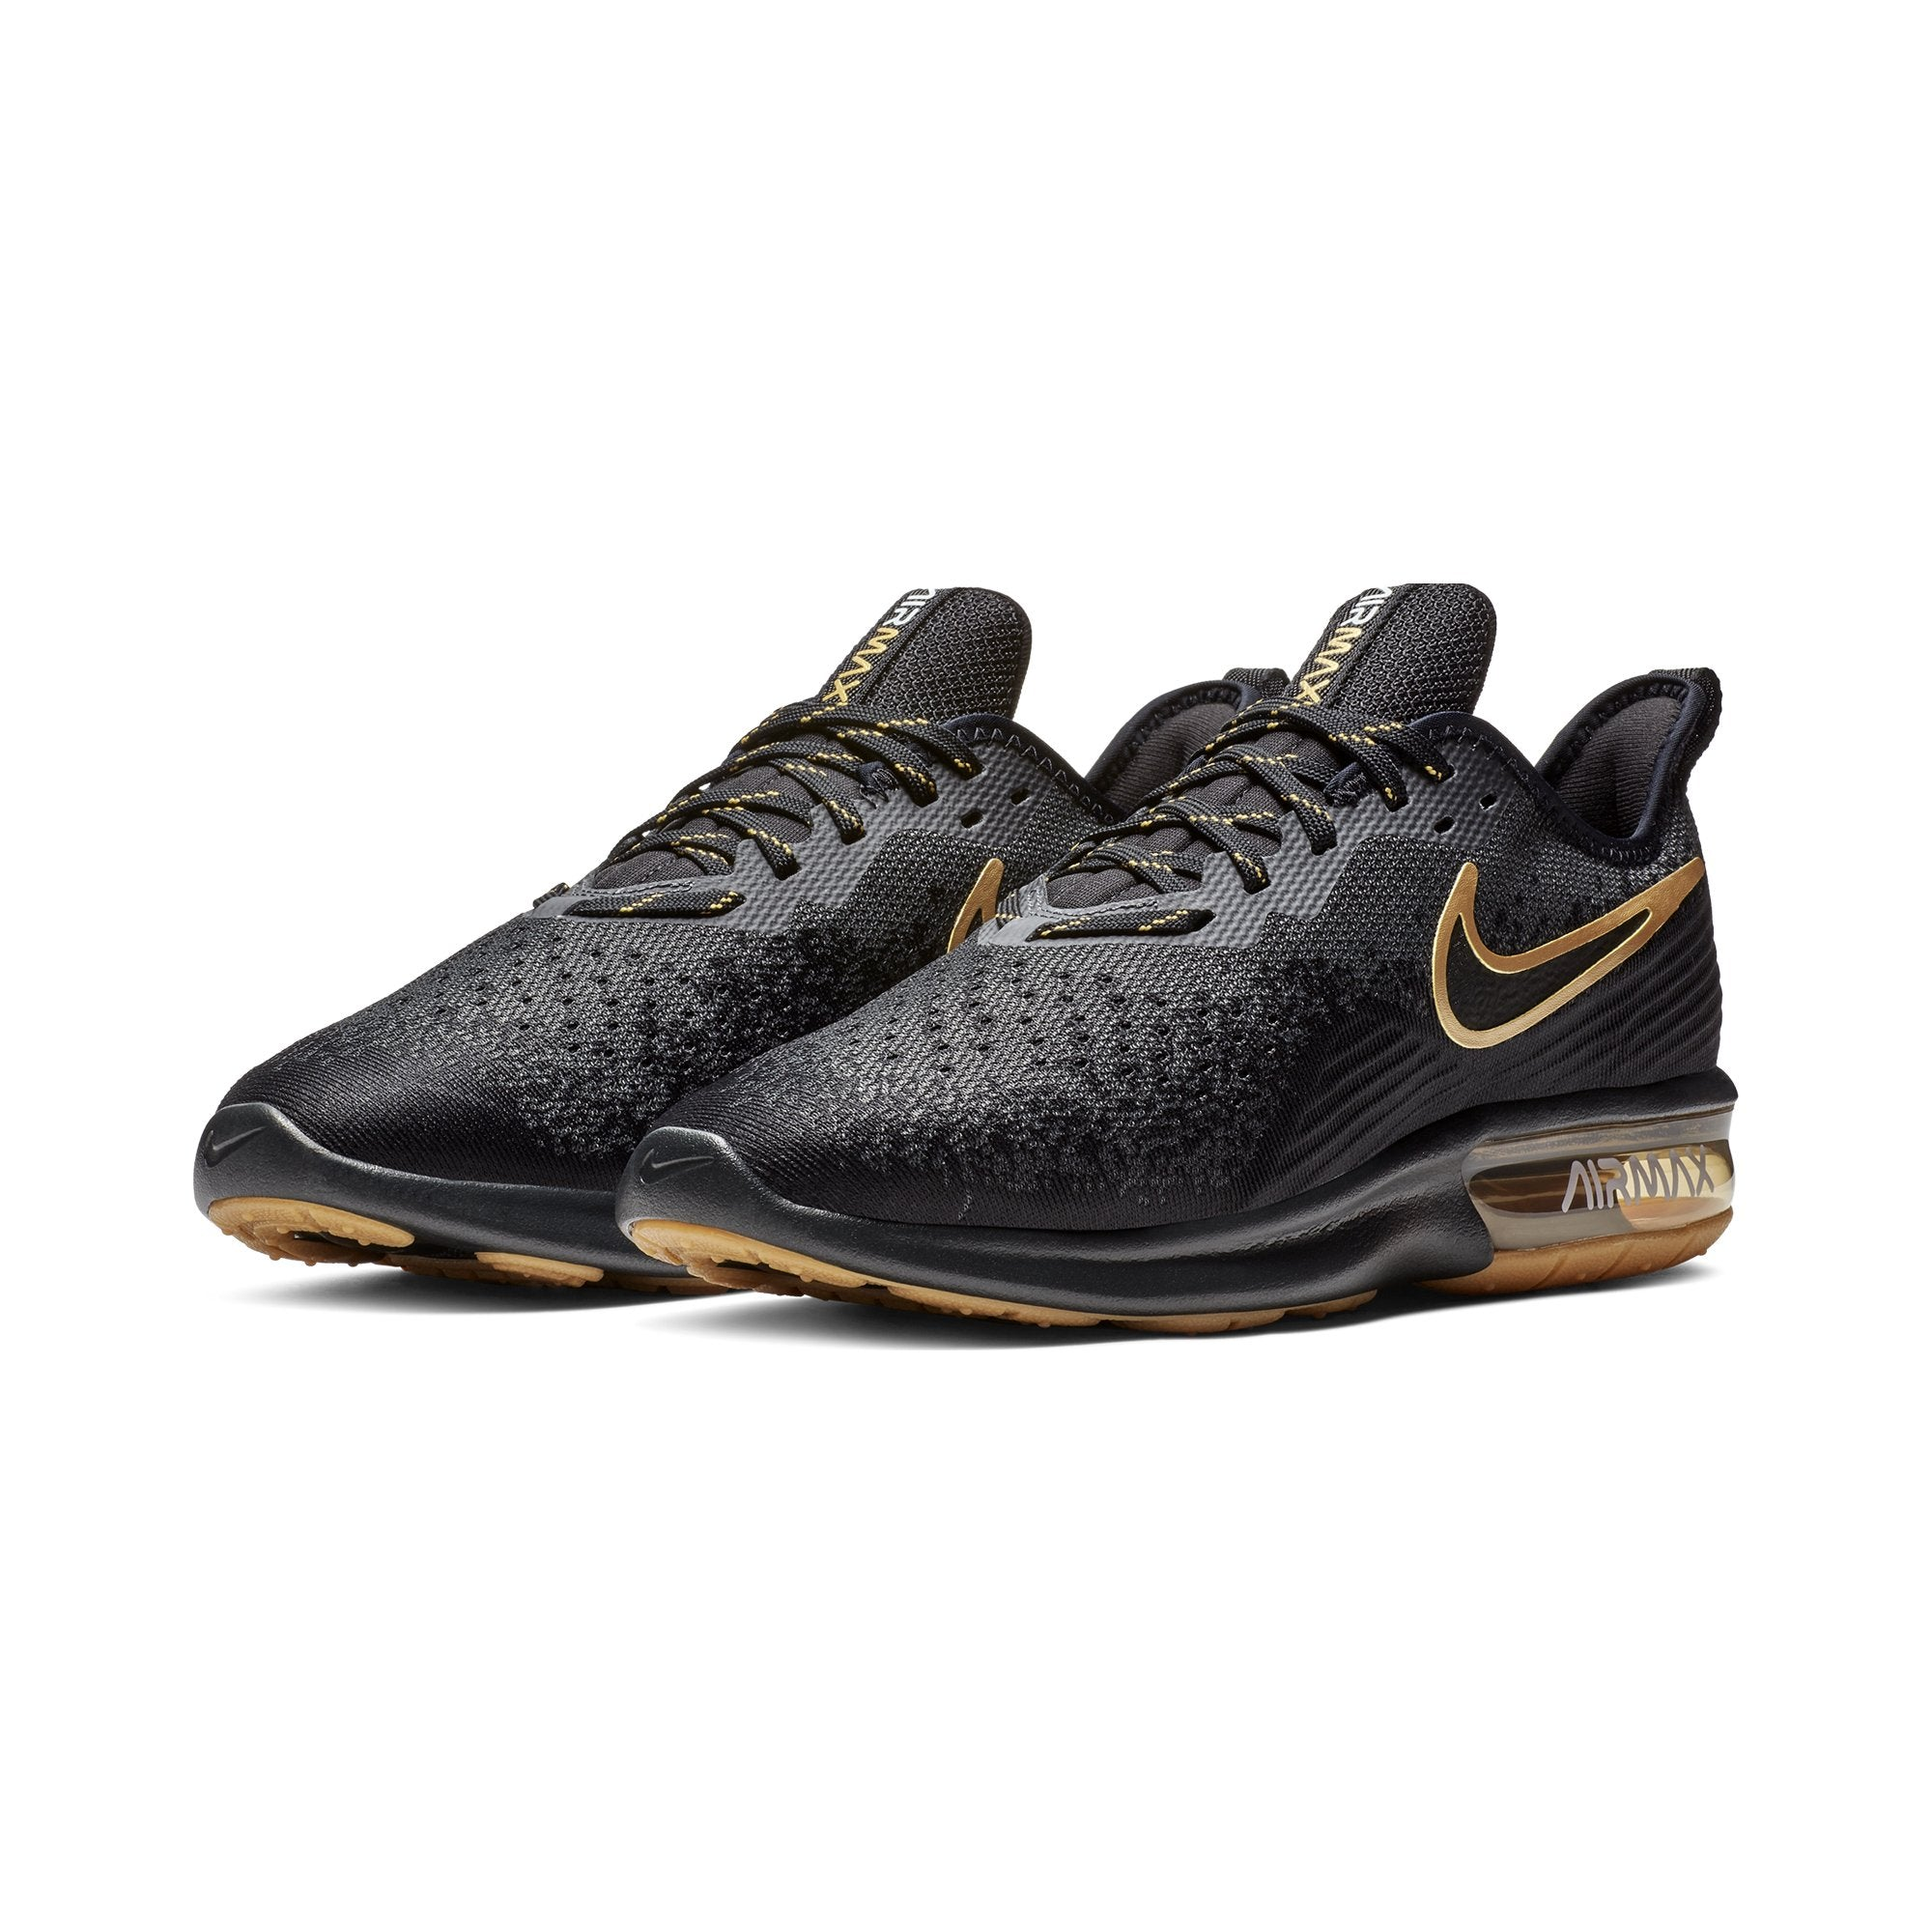 eeff92ab3124e Buy Nike Men's Air Max Sequent 4 Running Shoes, Black/Anthracite ...